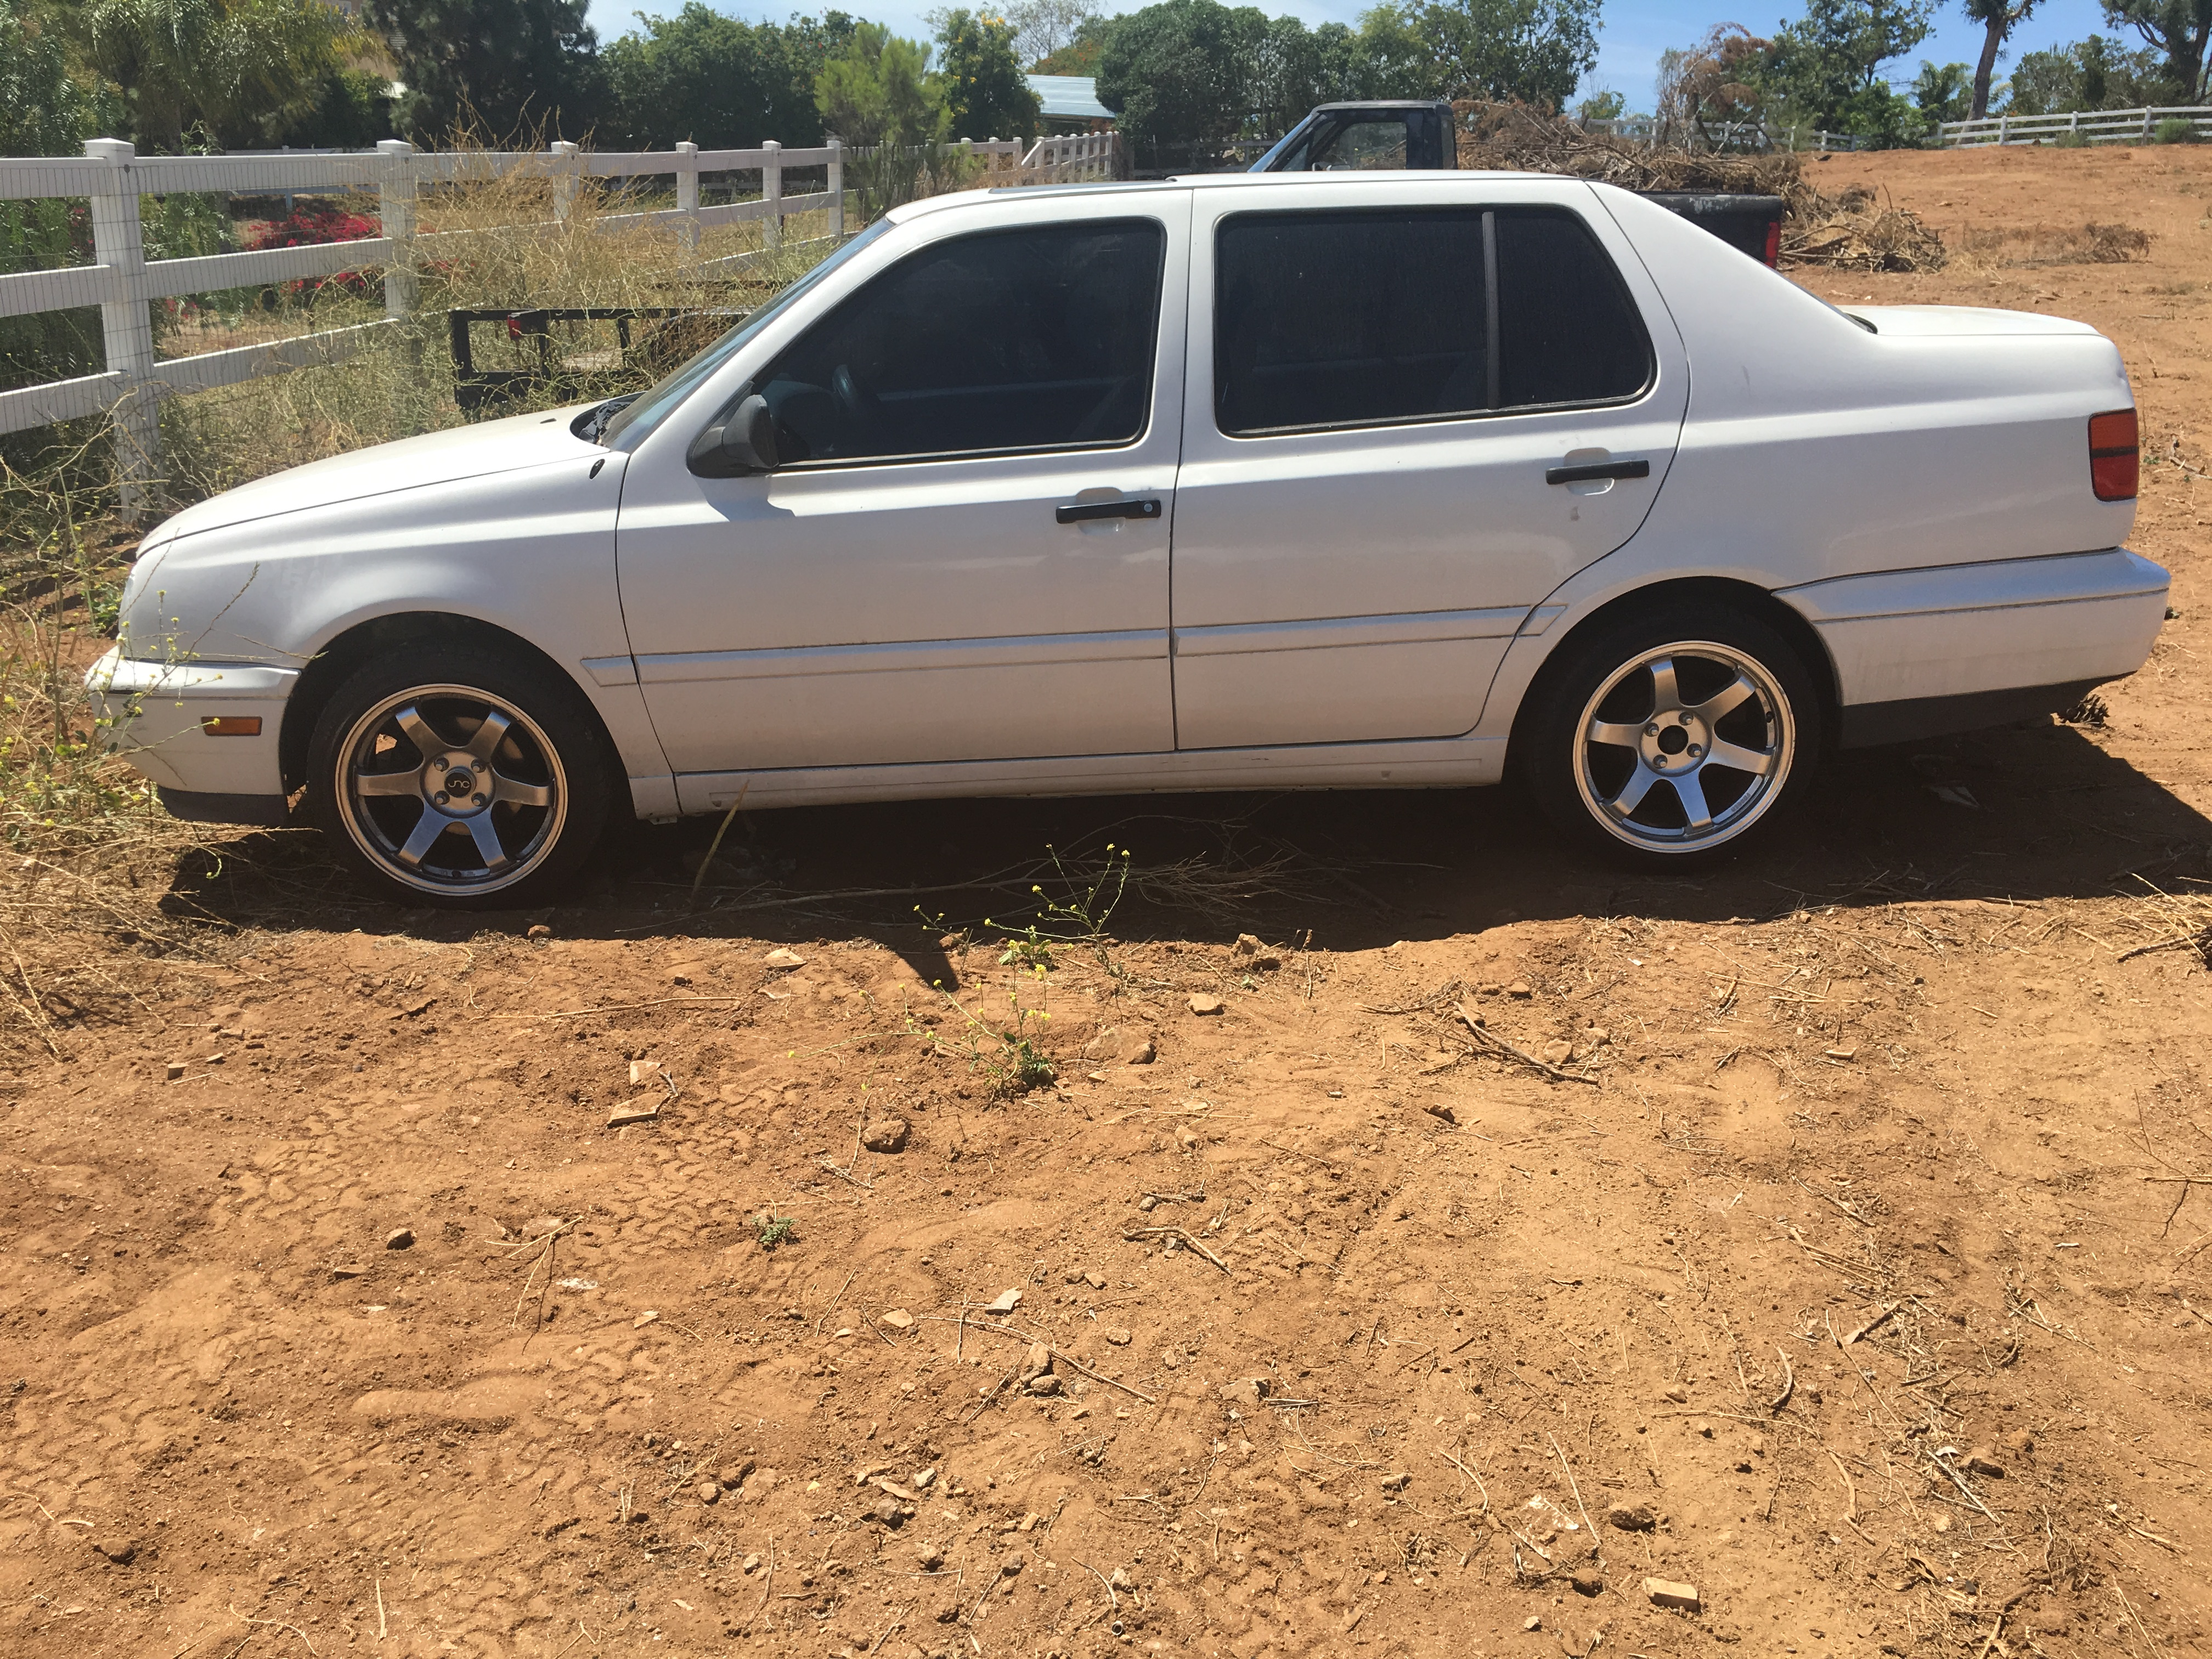 Cash For Cars Searcy Ar Sell Your Junk Car The